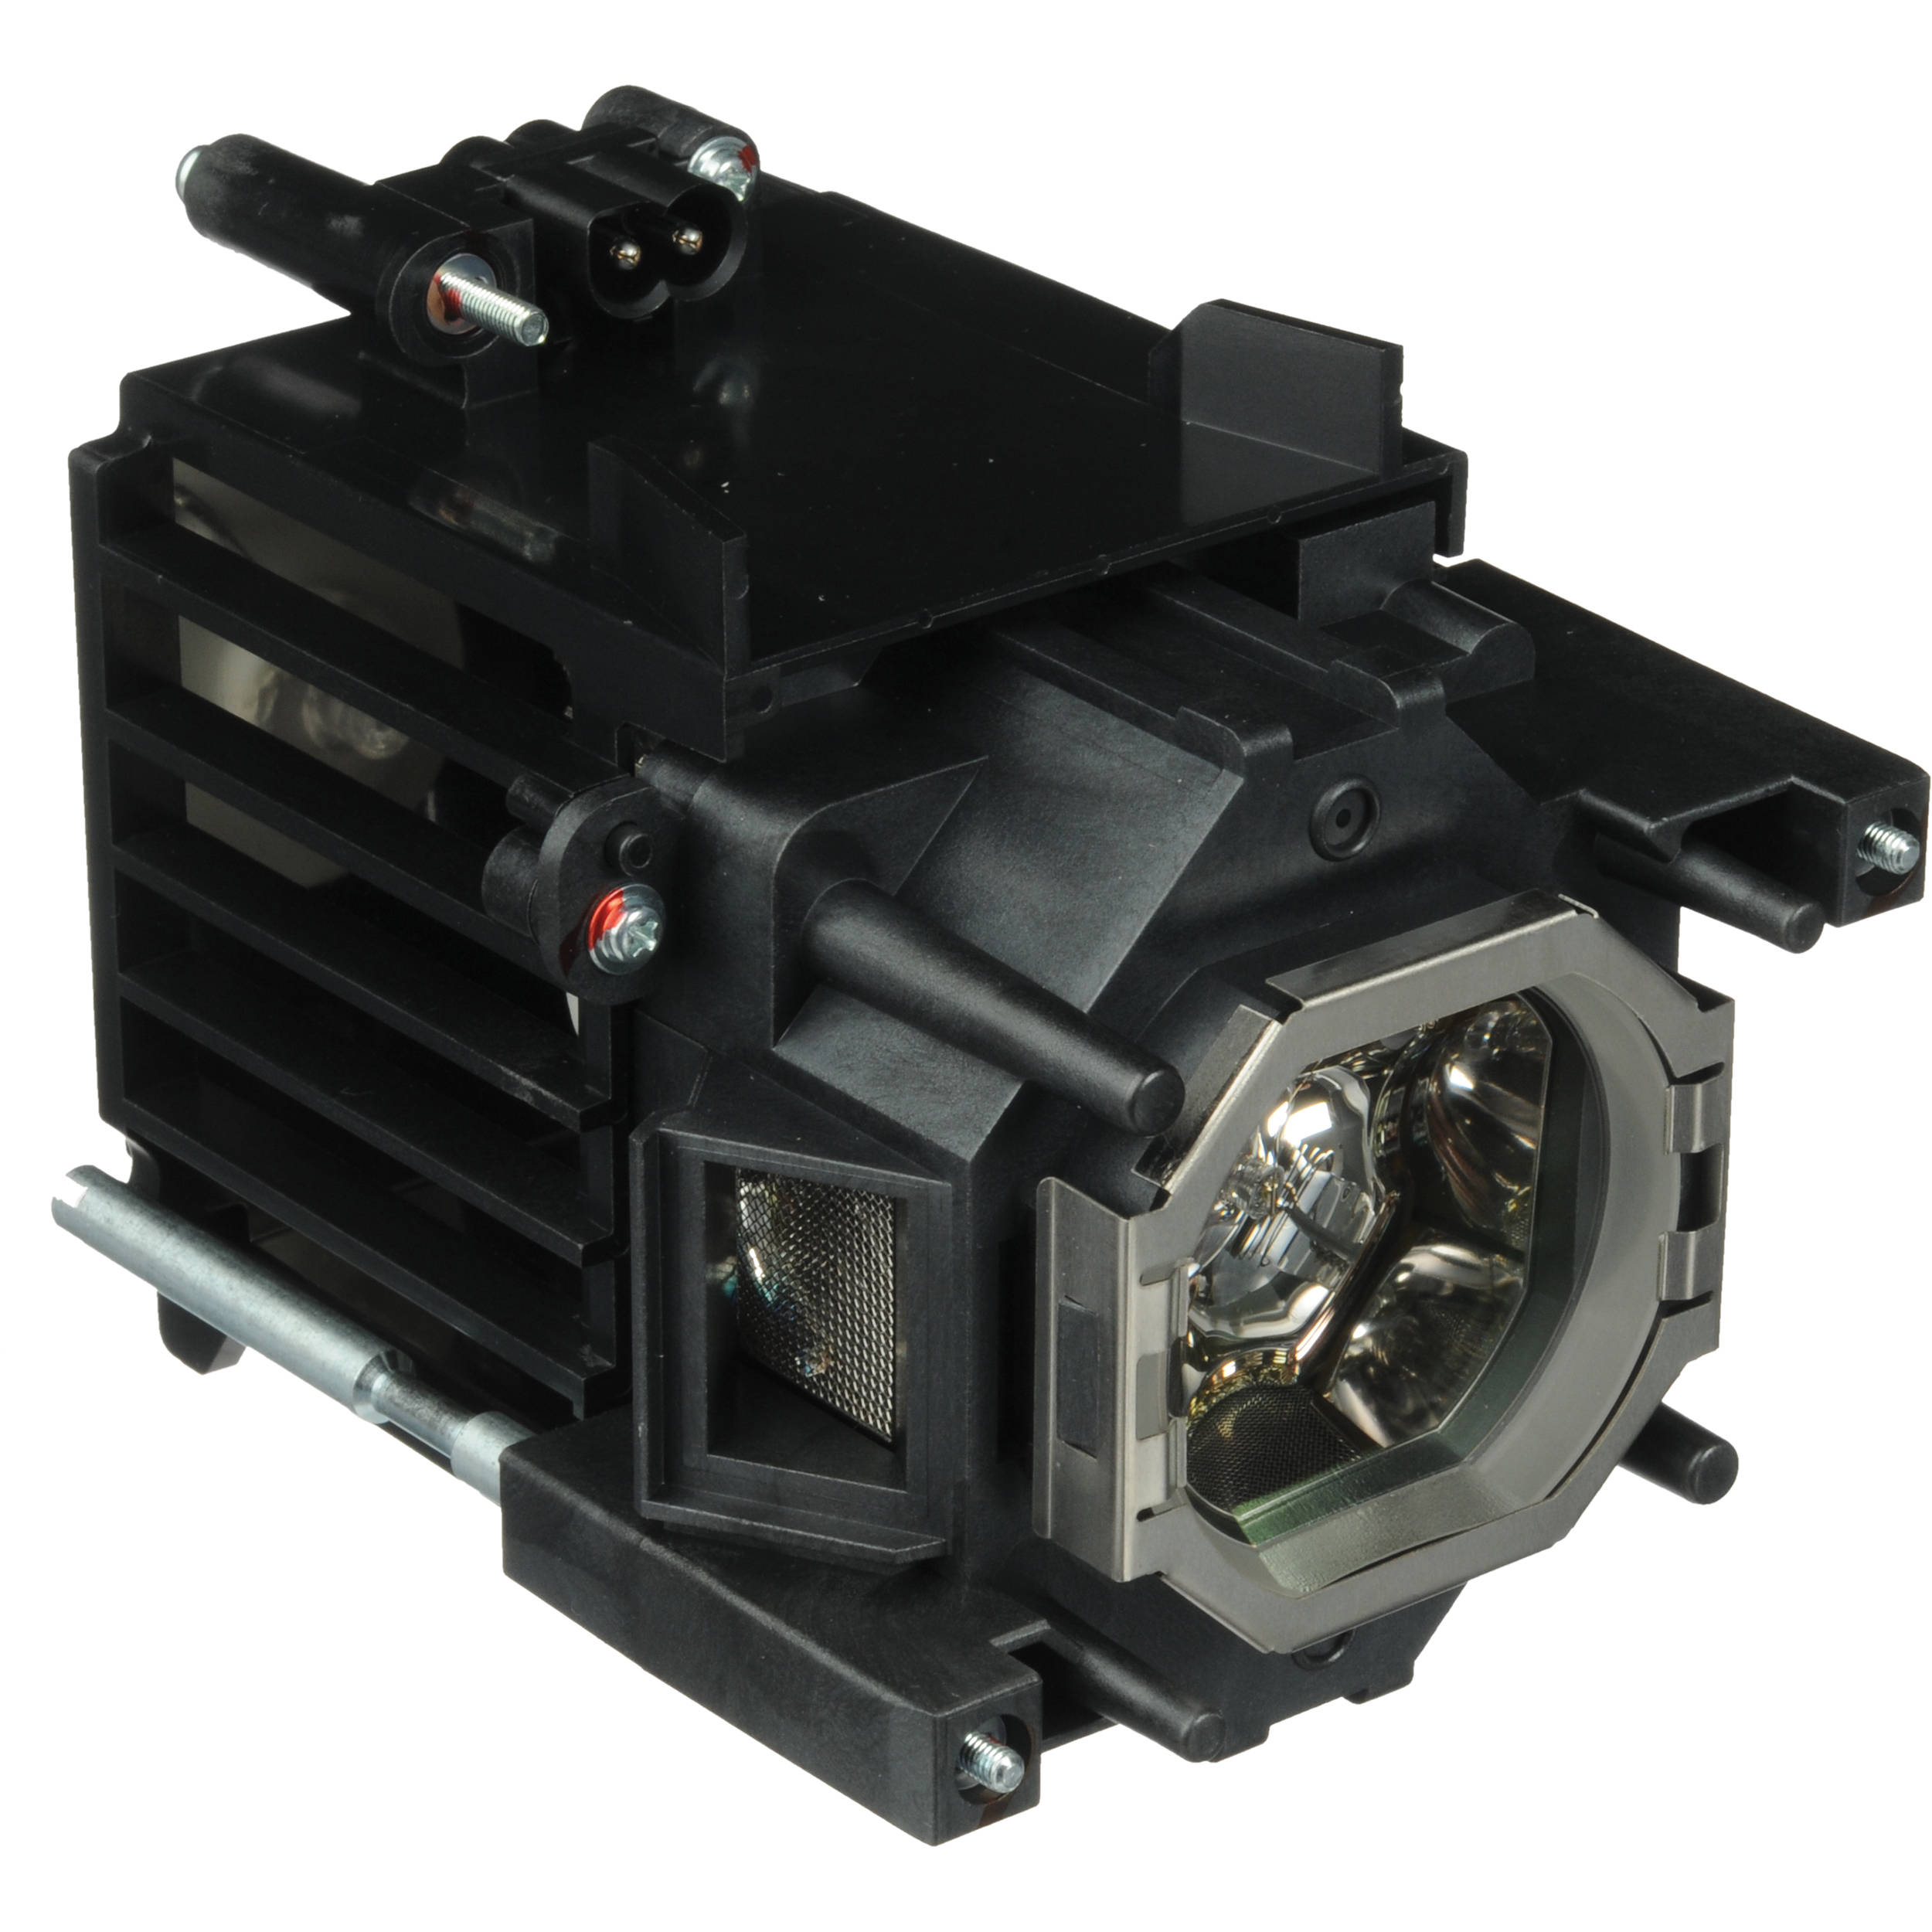 Sony LMP-F272 Replacement Lamp for Sony VPL-FH30 and LMP-F272